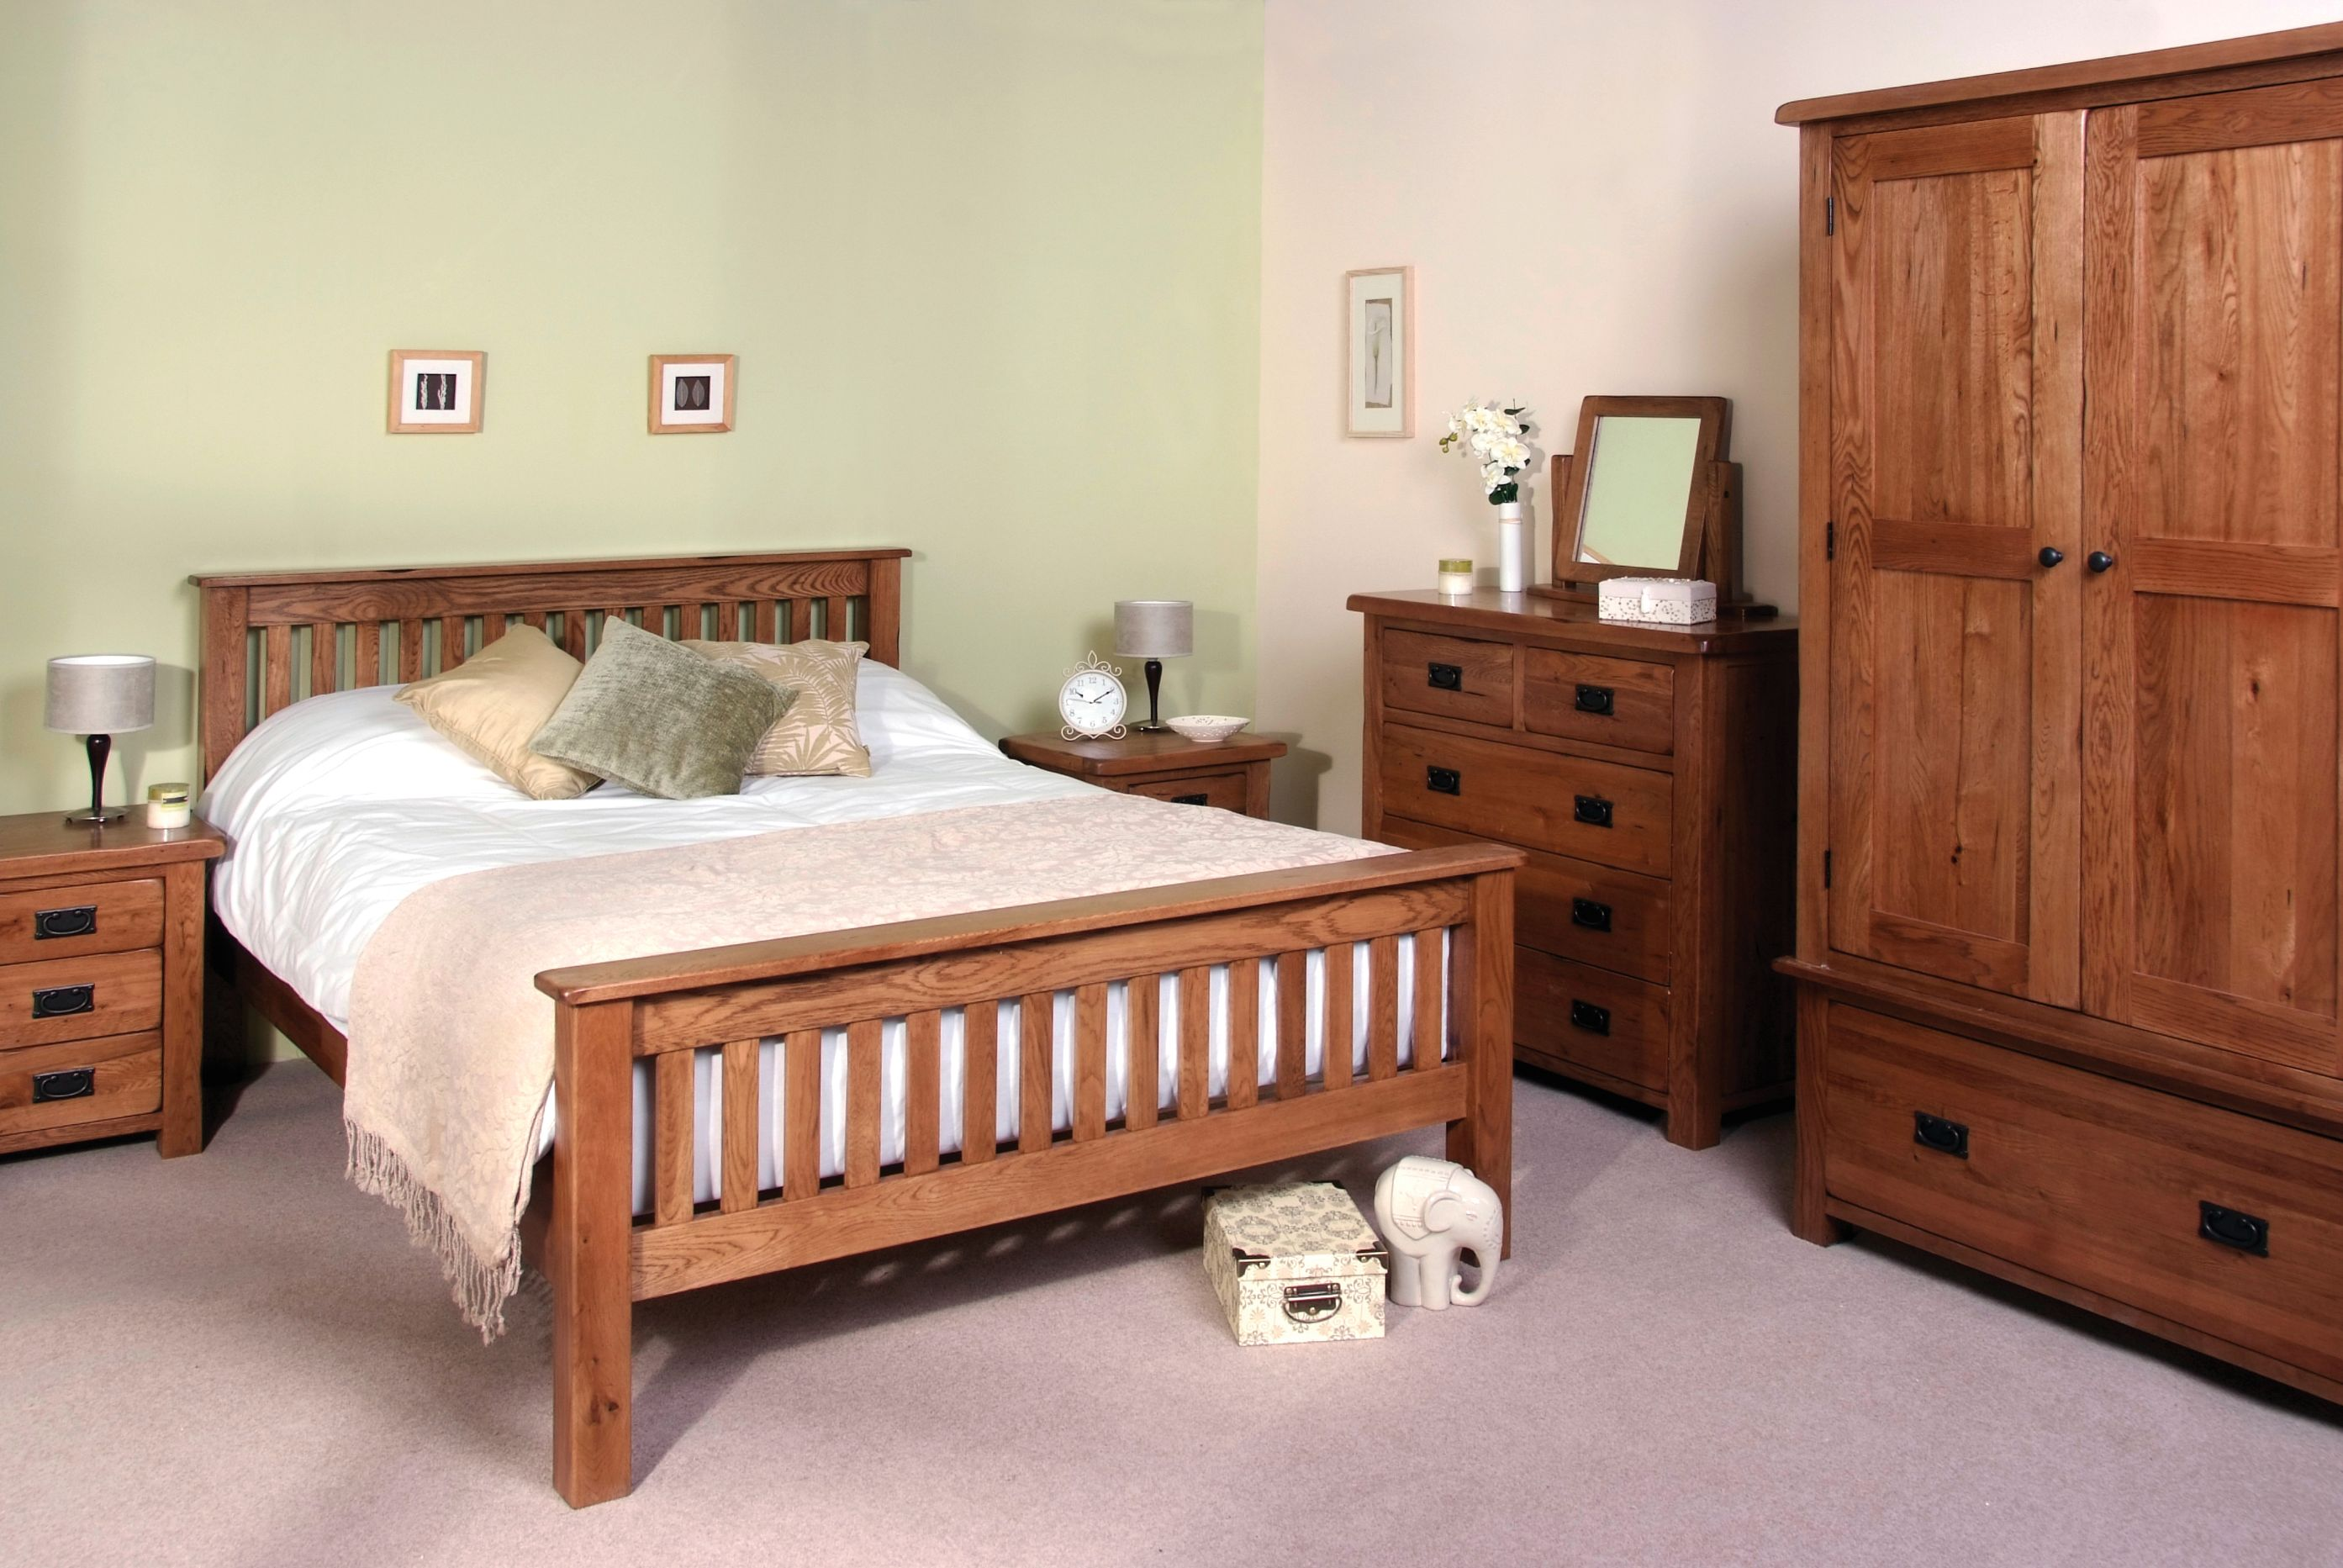 Devonshire Pine - RUSTIC OAK - Bedroom